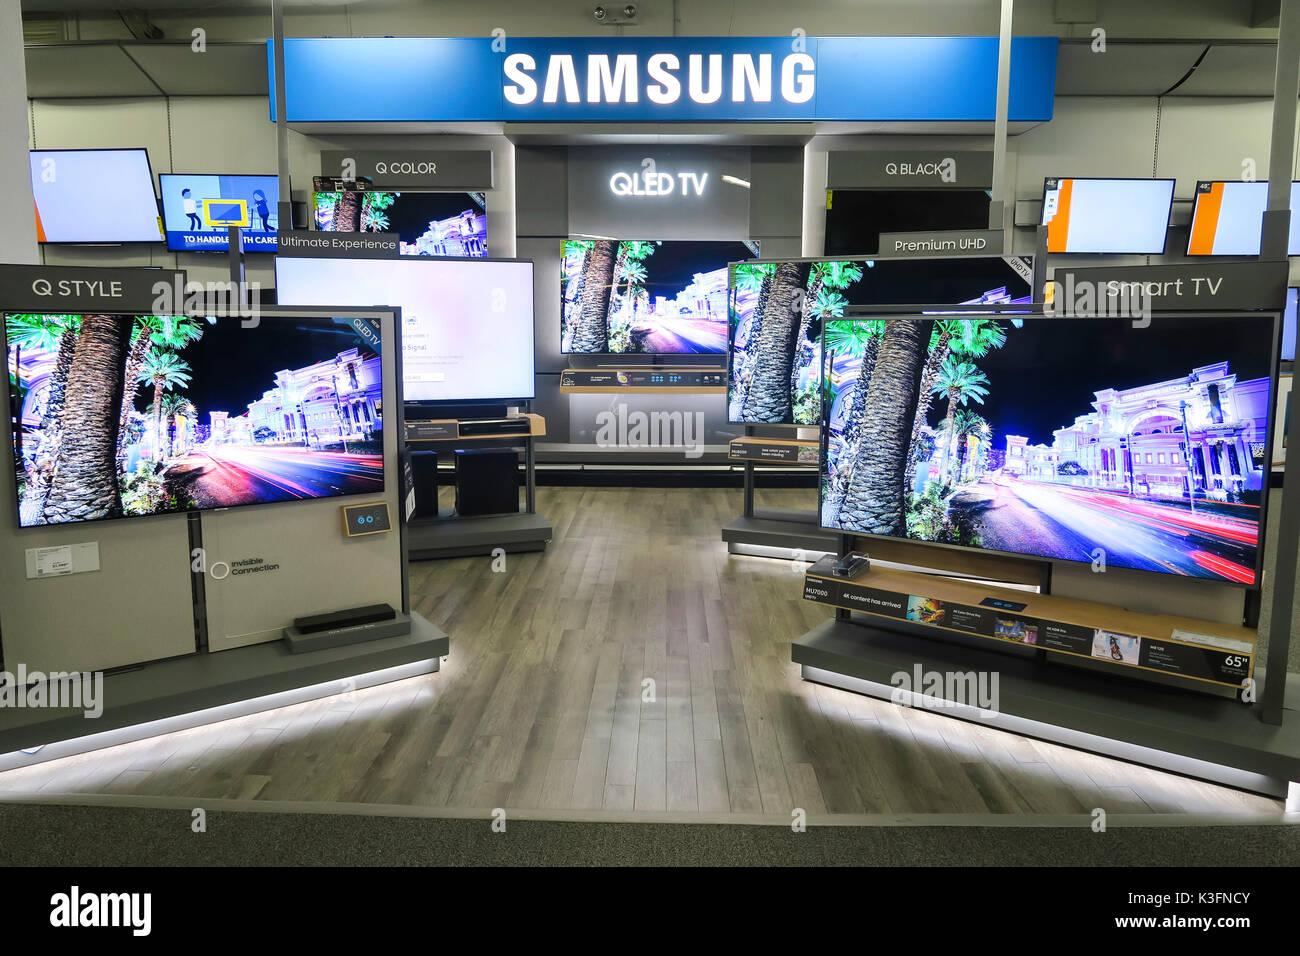 how to buy samsung stock in usa